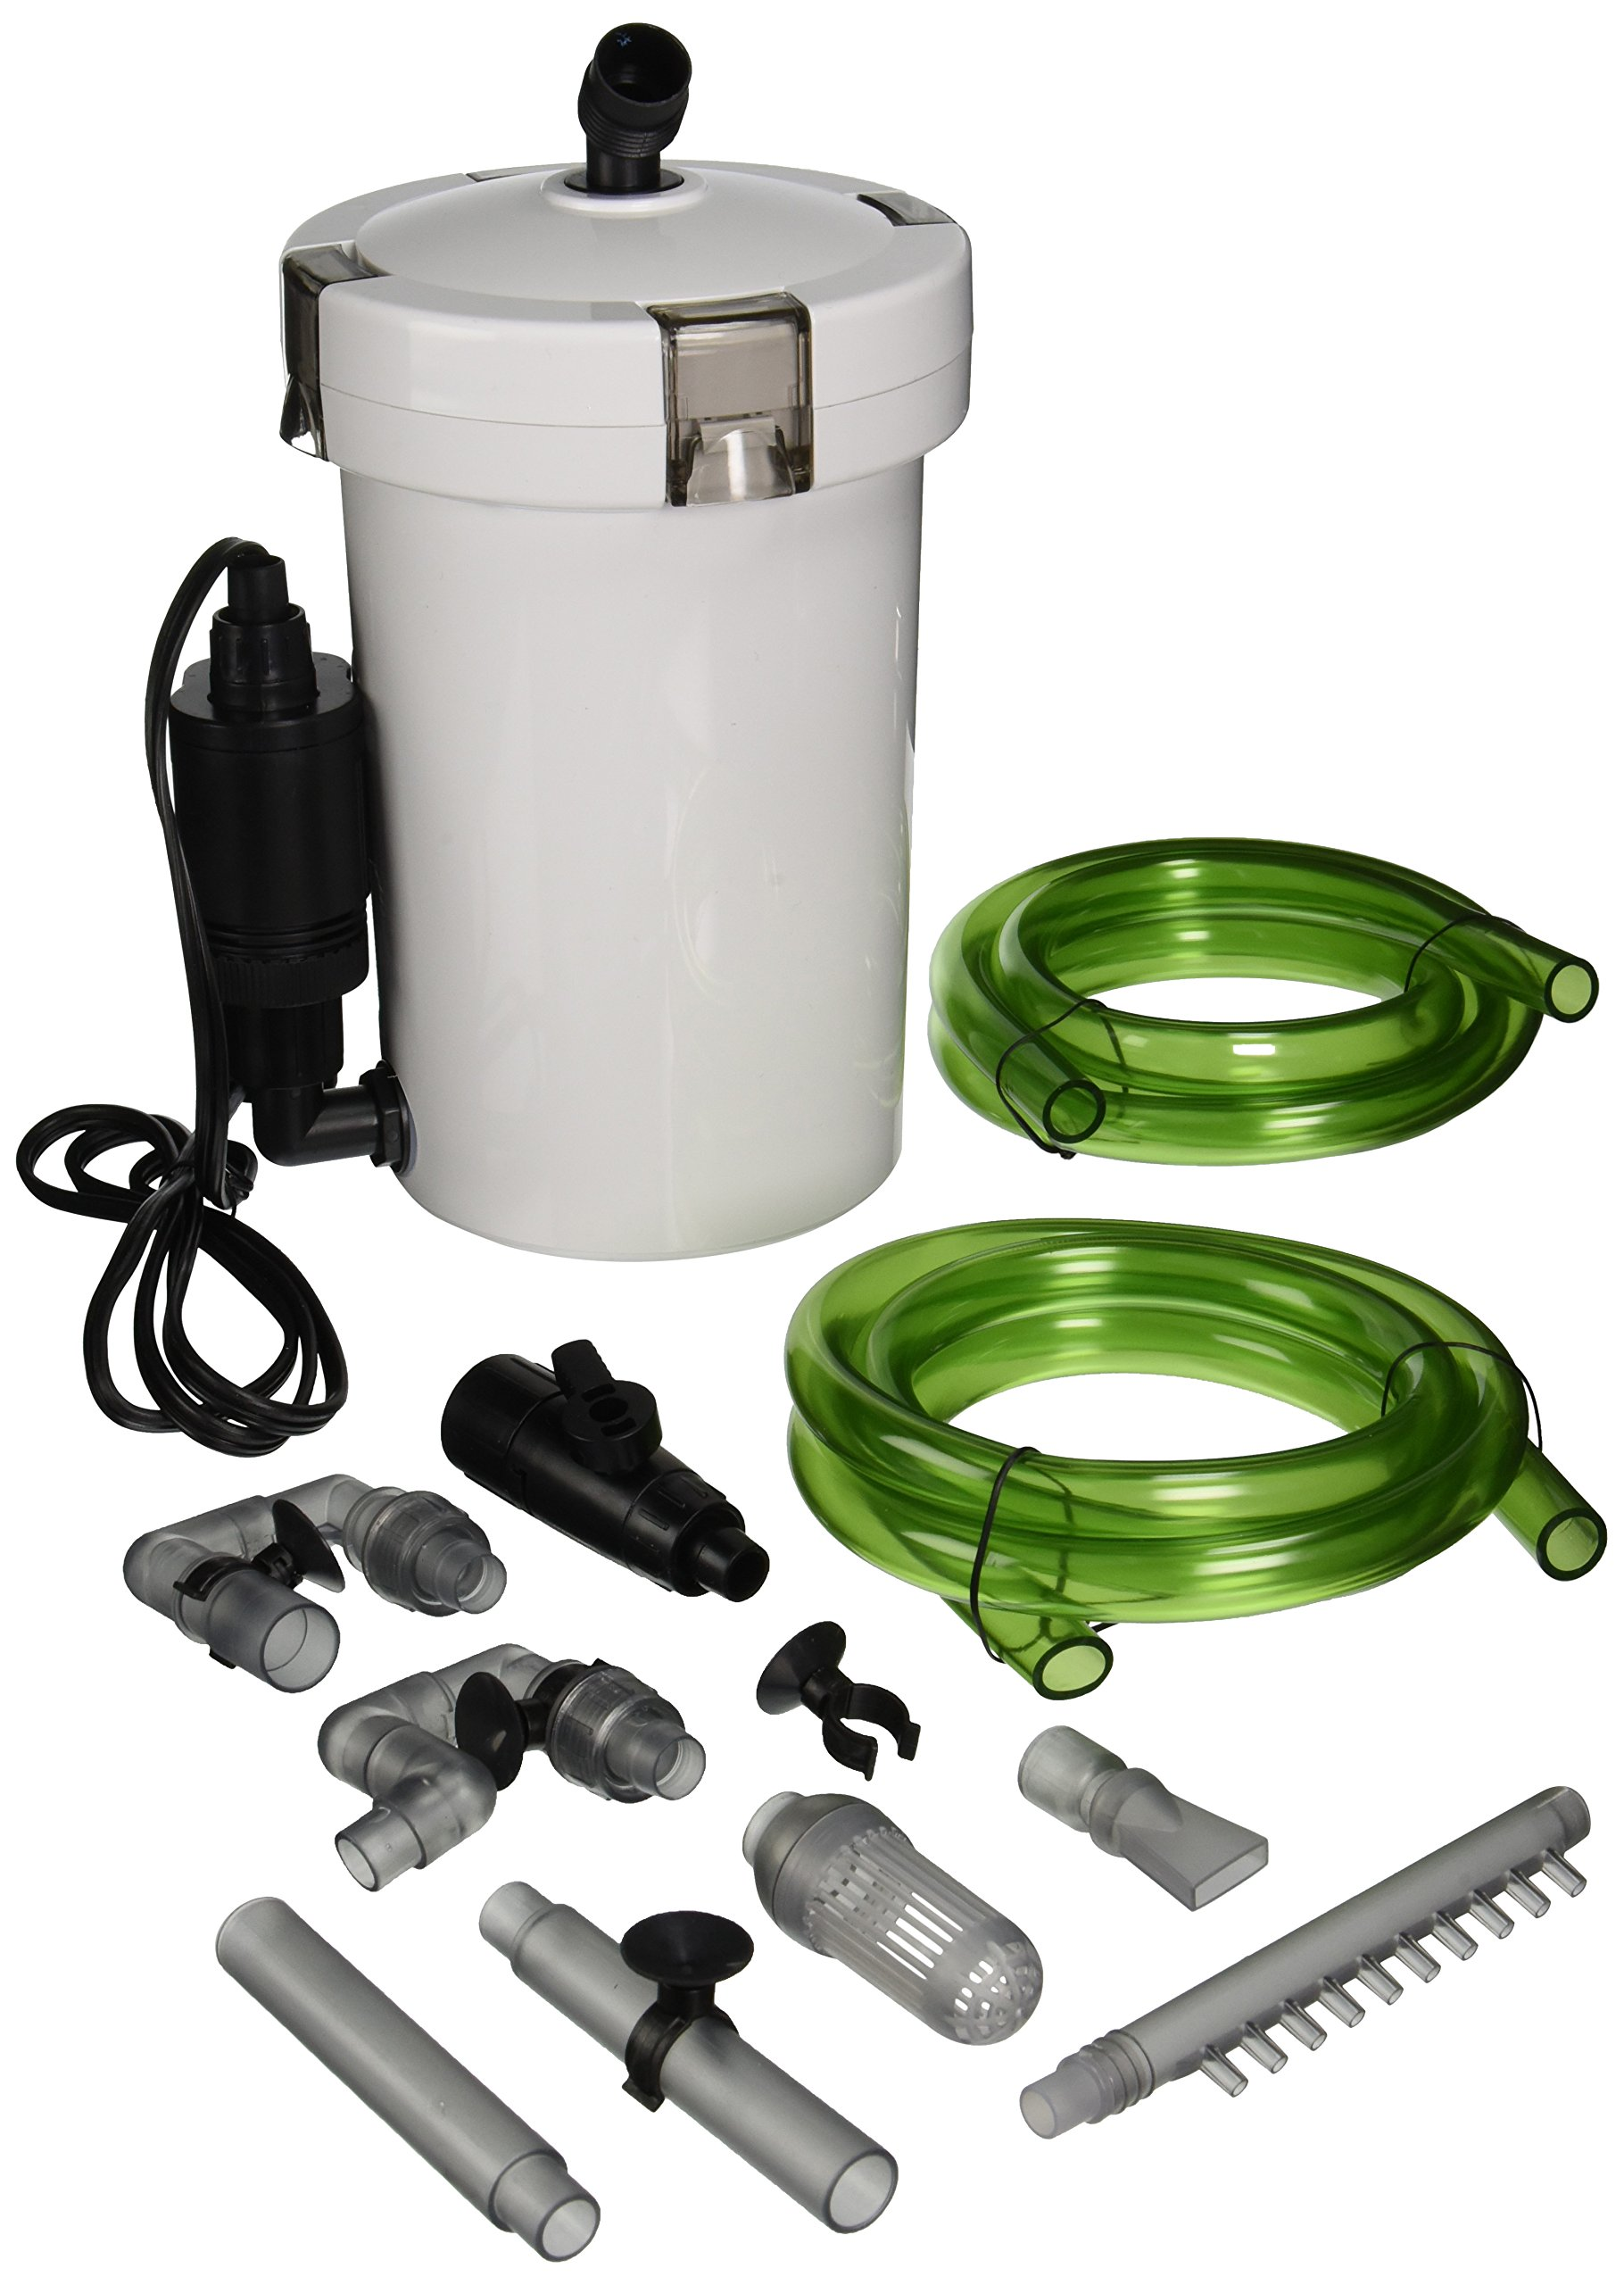 Sunsun Tech'n'Toy HW-603B 106 GPH 3-Stage External Canister Filter by Sunsun